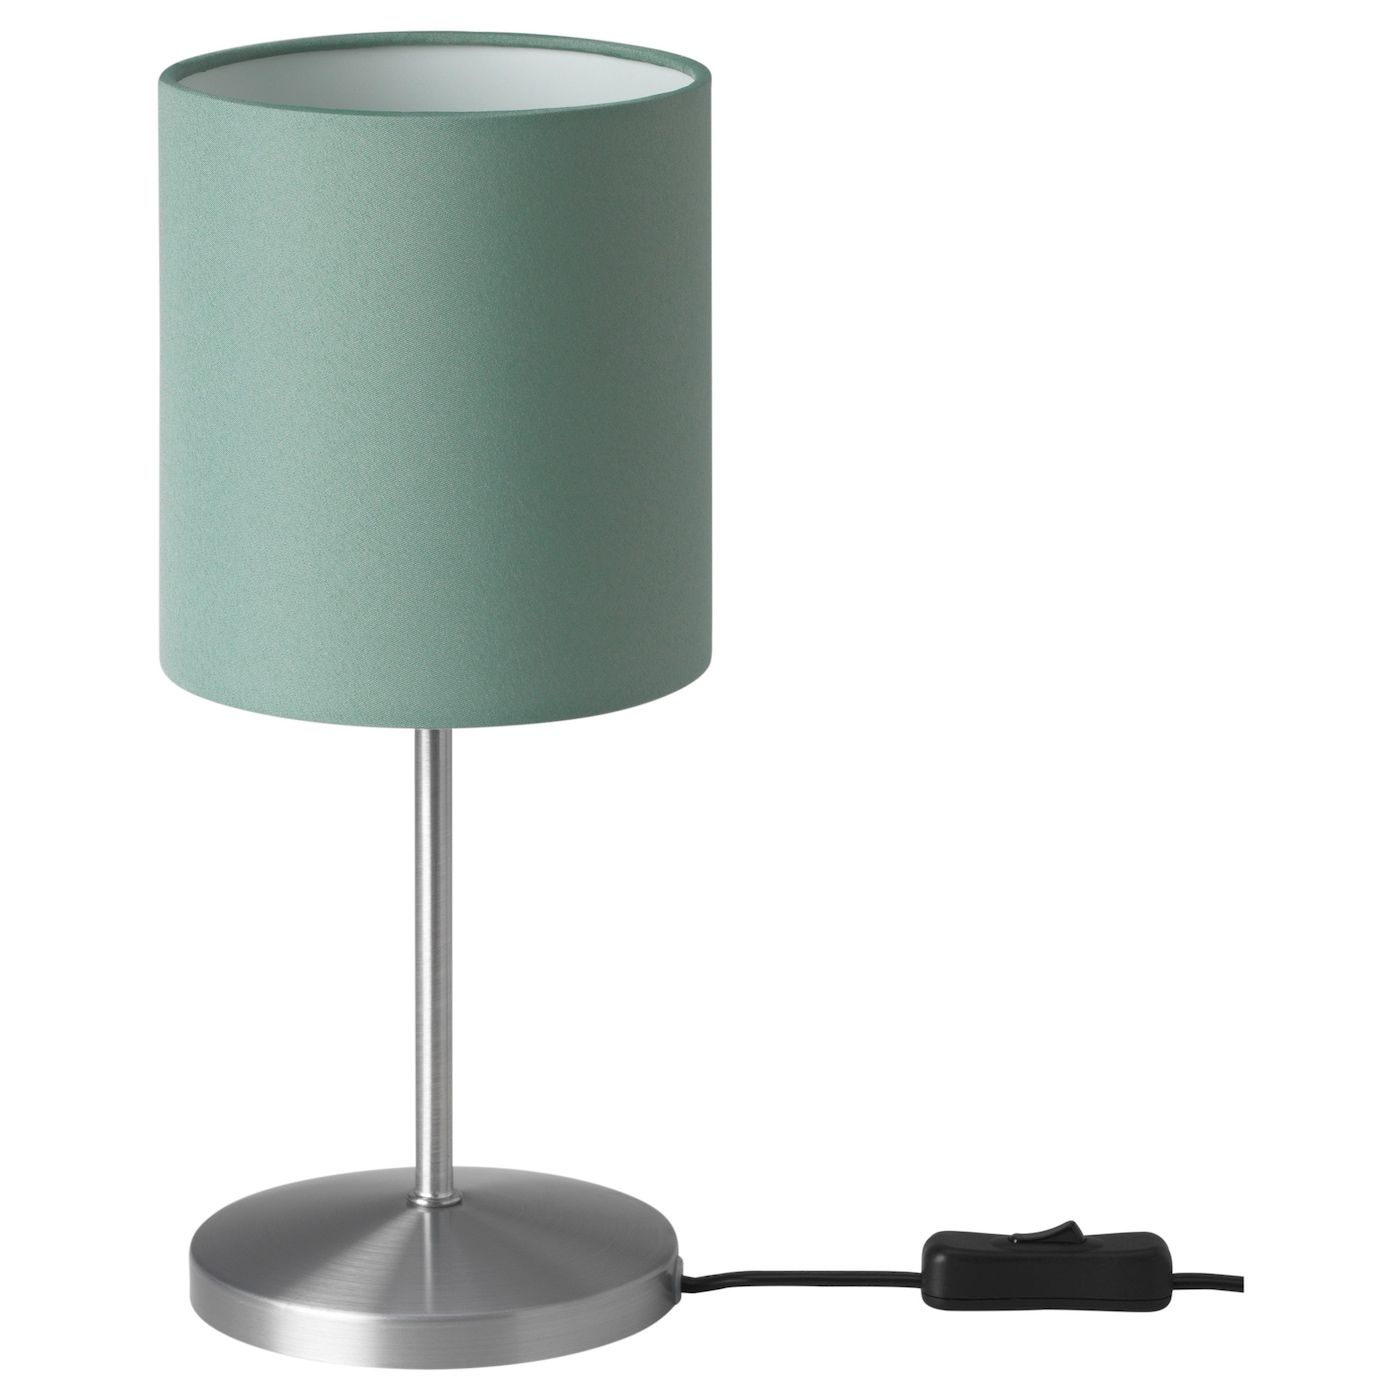 Us Furniture And Home Furnishings Green Table Lamp Table Lamp Lamp